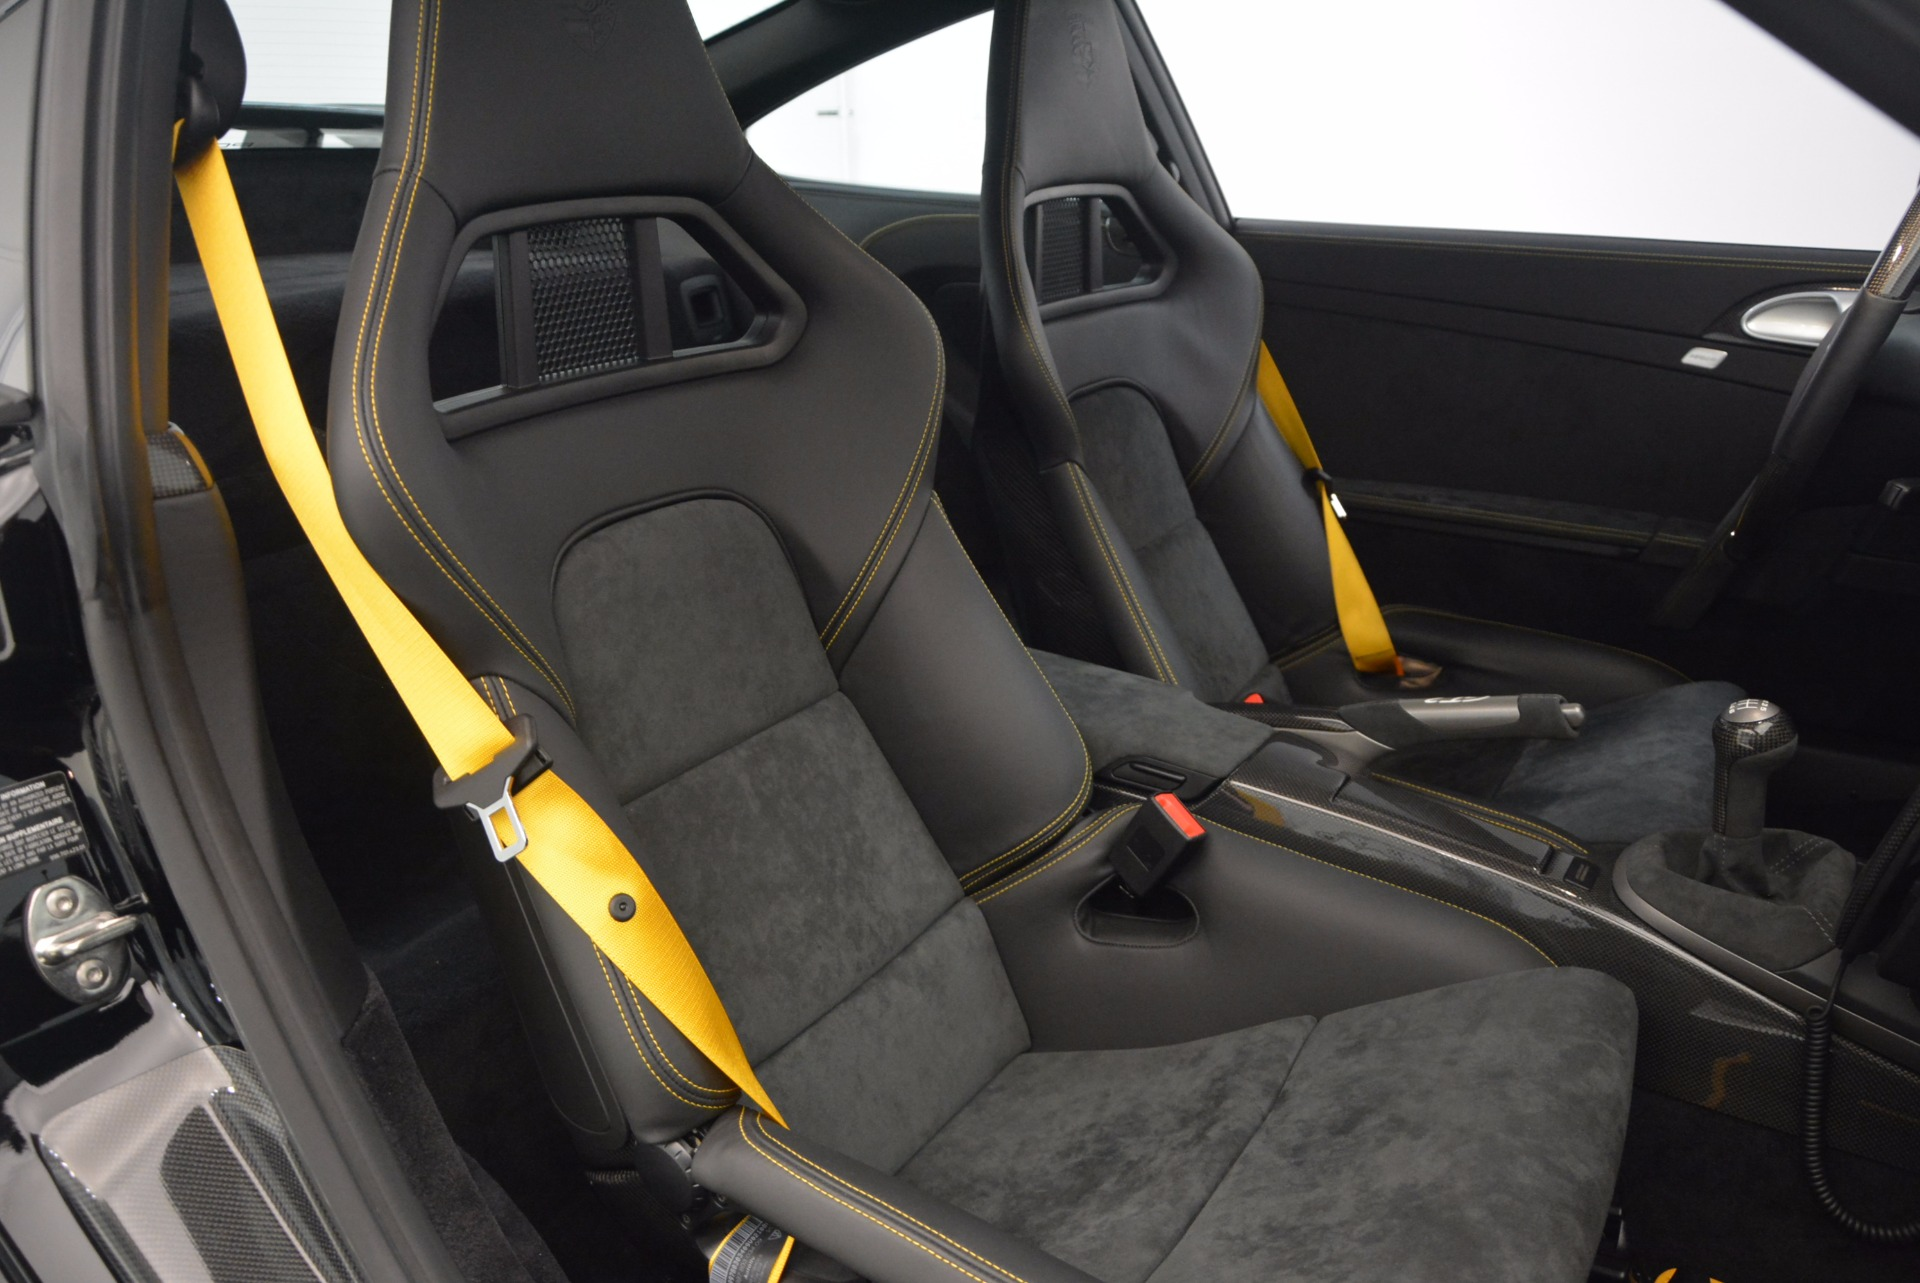 Used 2008 Porsche 911 GT2 For Sale In Greenwich, CT 1400_p19